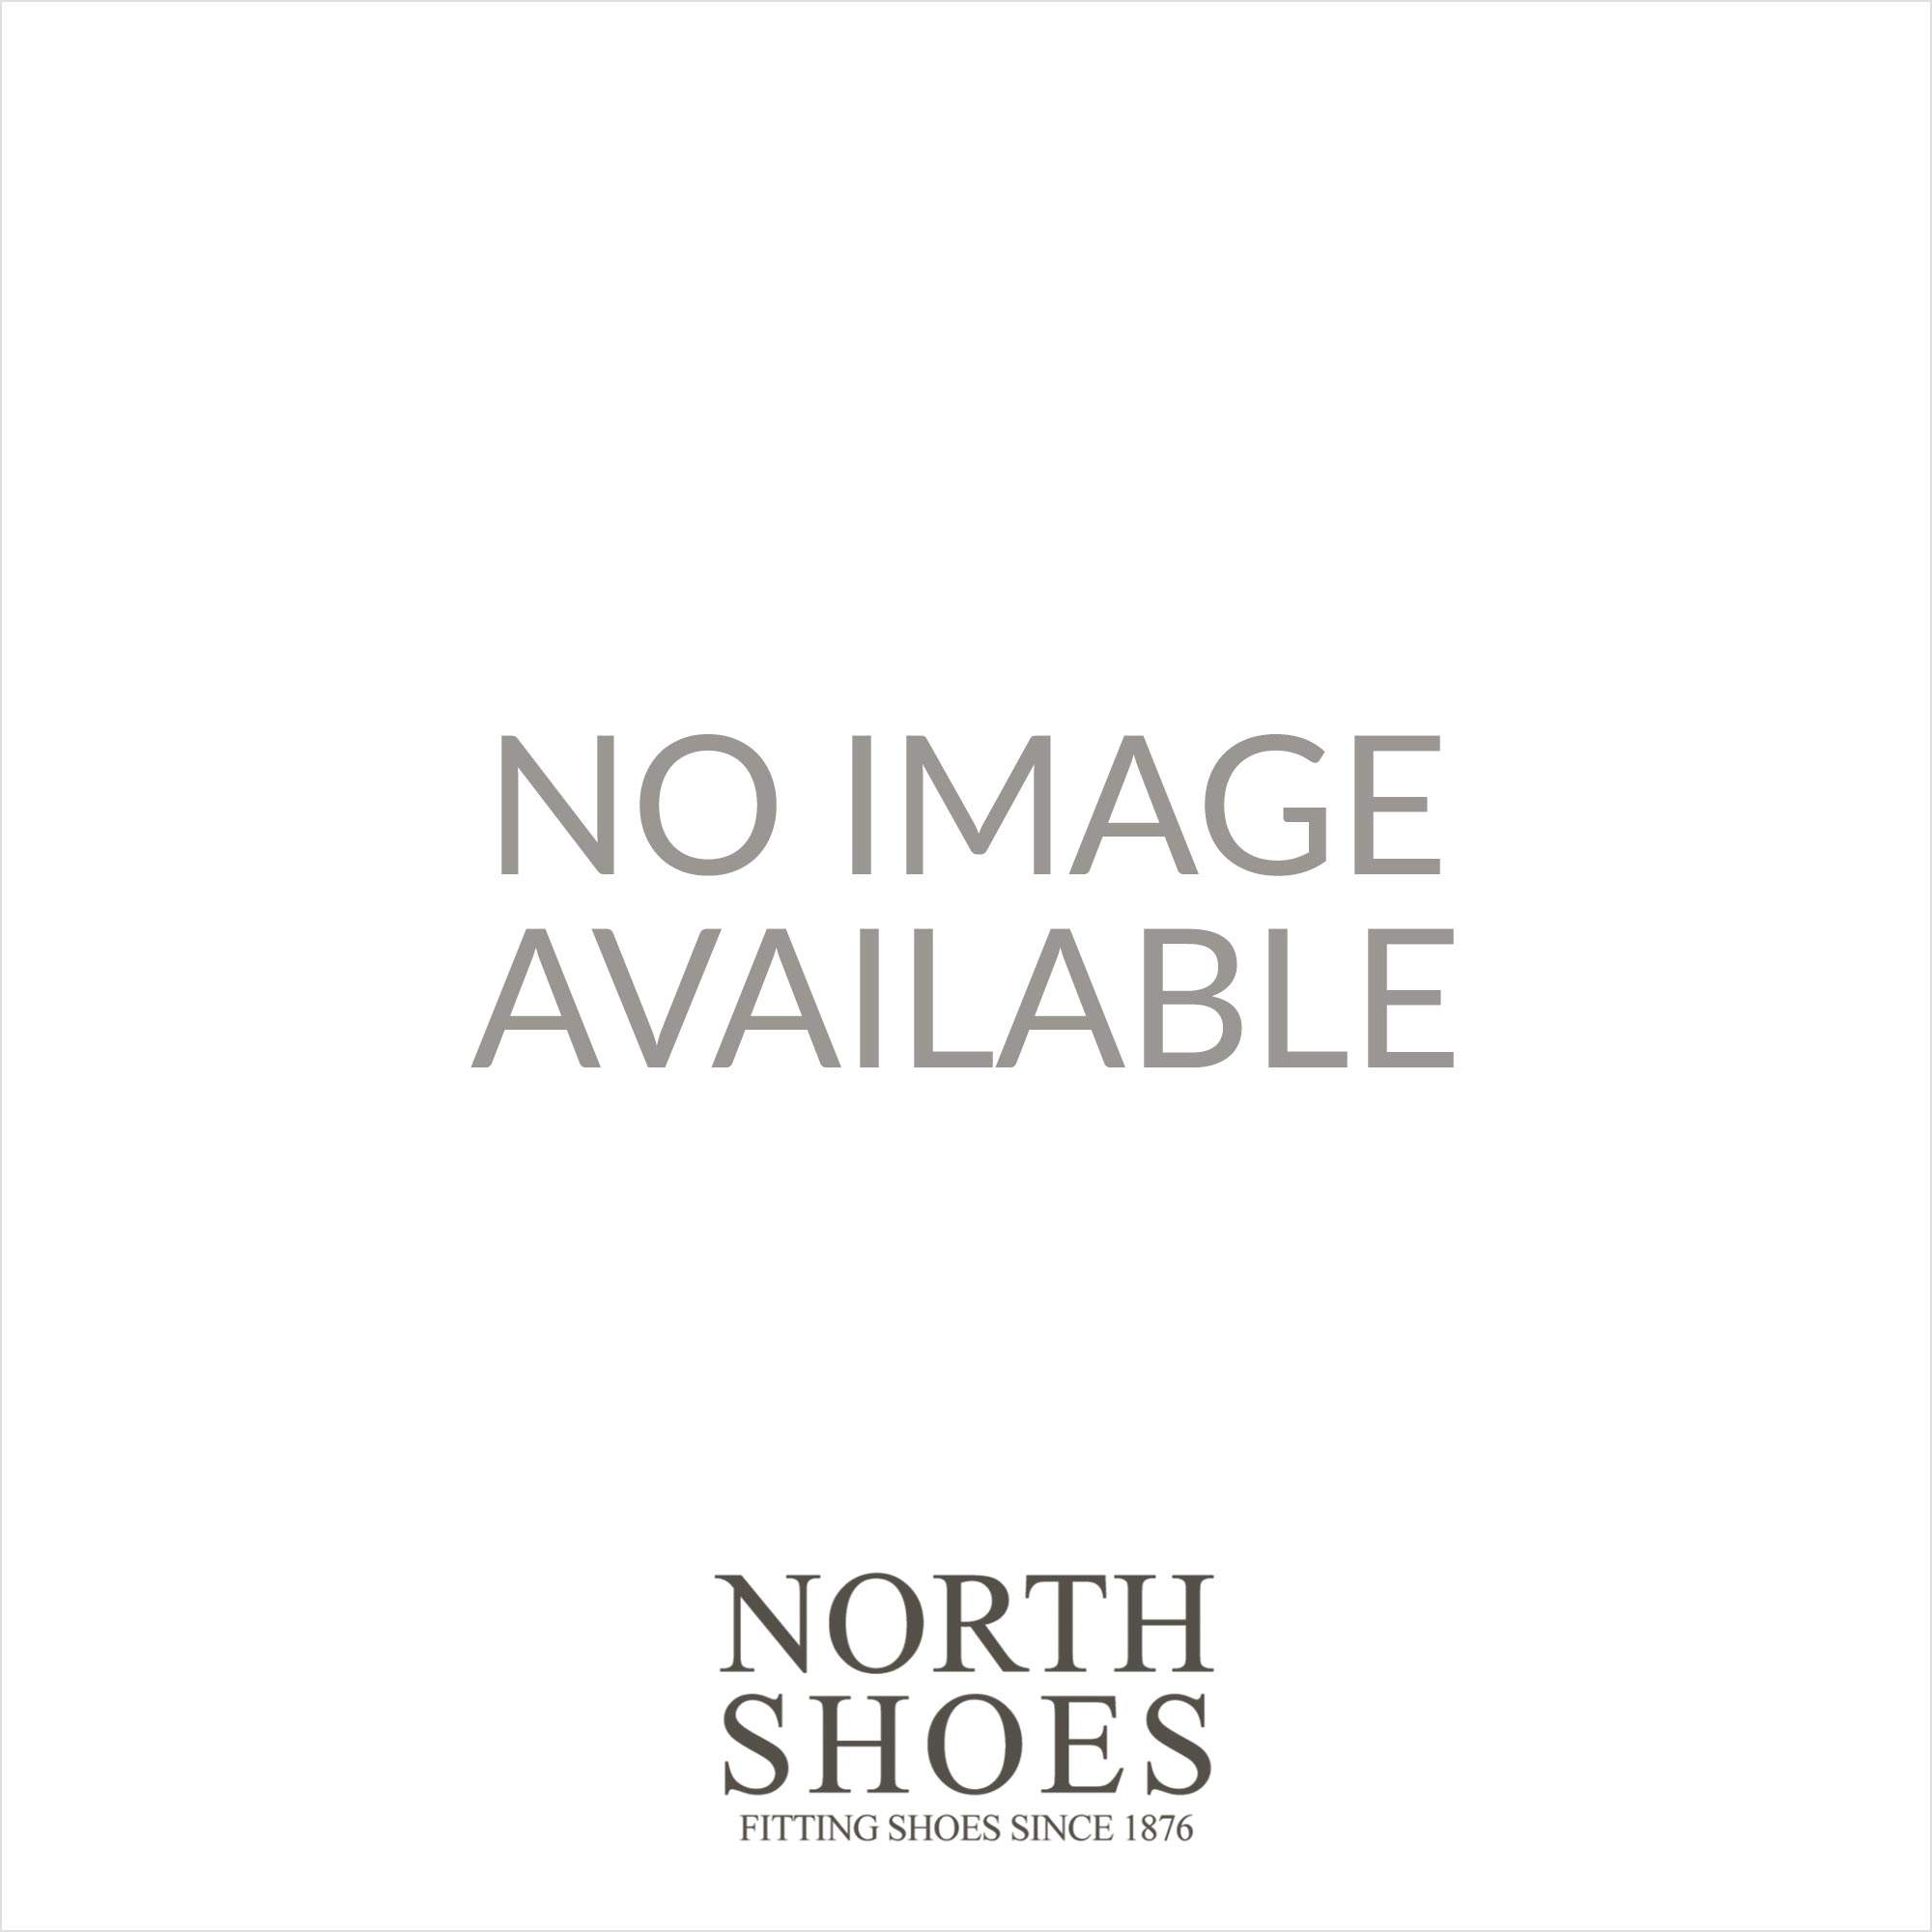 skate shoes complimentary shipping distinctive style Levke Navy Suede Leather Womens Pull On Knee High Boots